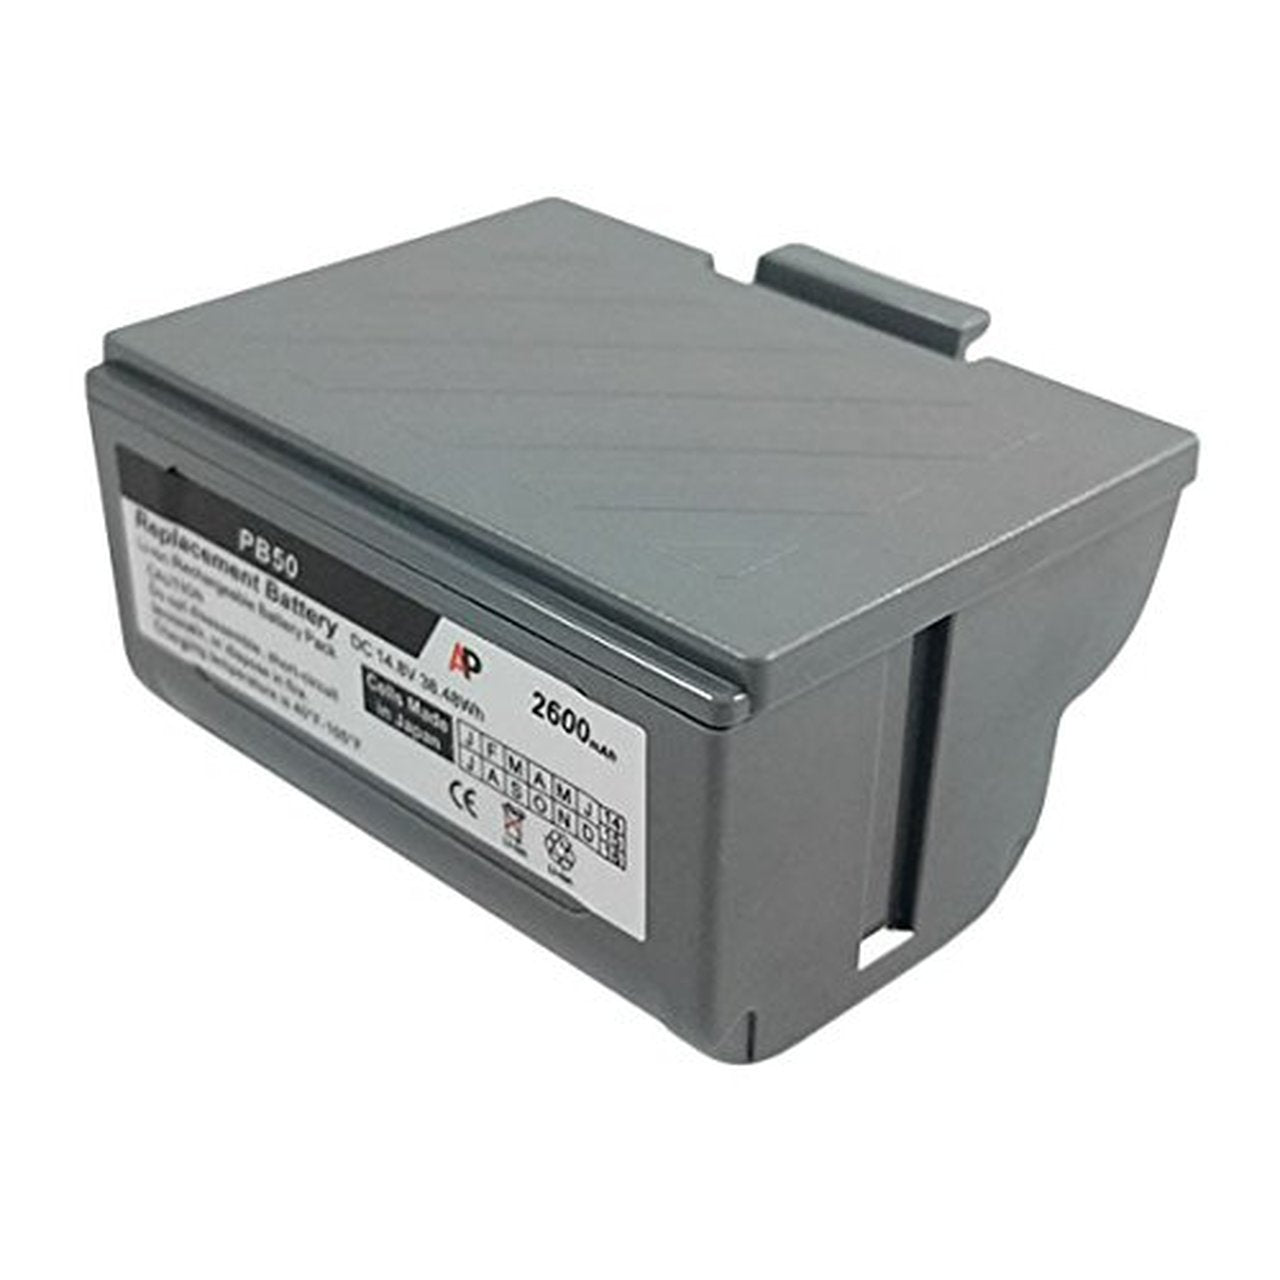 Honeywell PB50 Battery